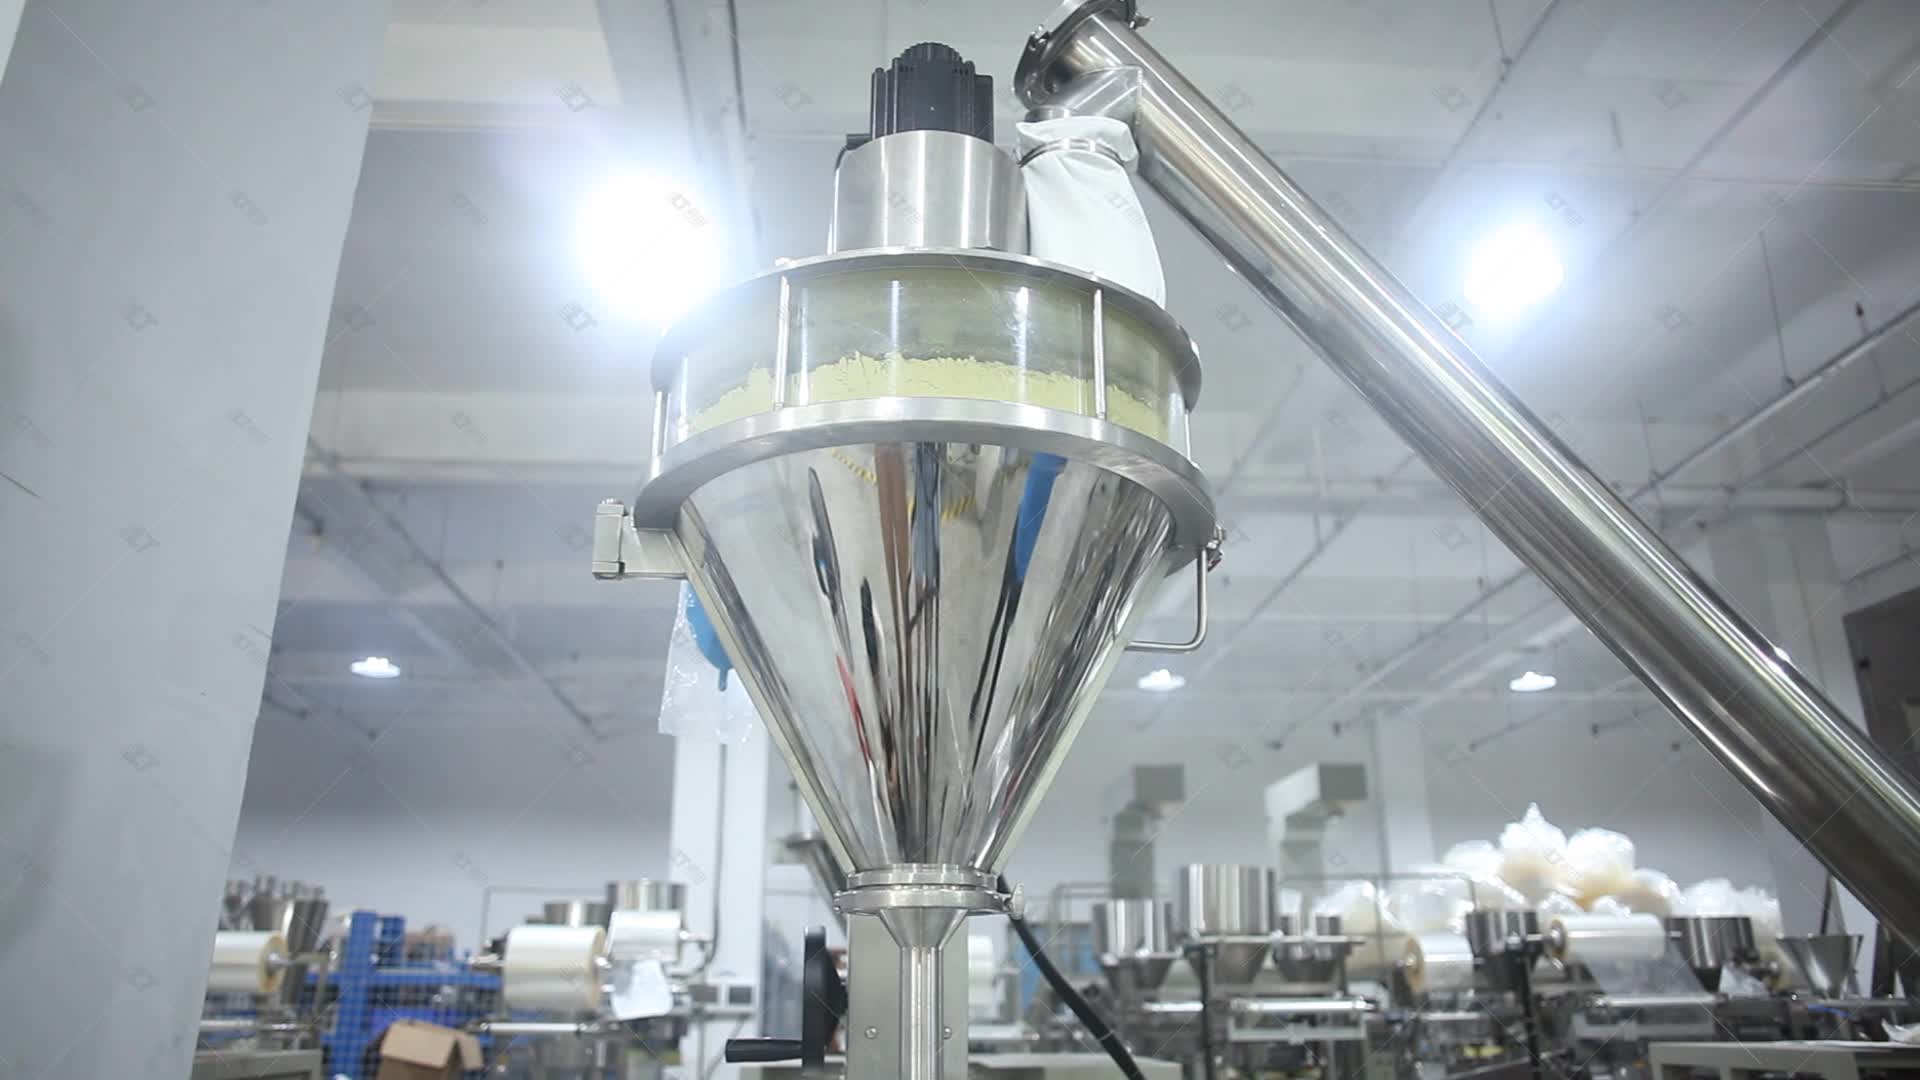 LT-720 Fully Automatic Auger Filler 1kg 2kg 3kg Sugar Packing Machine